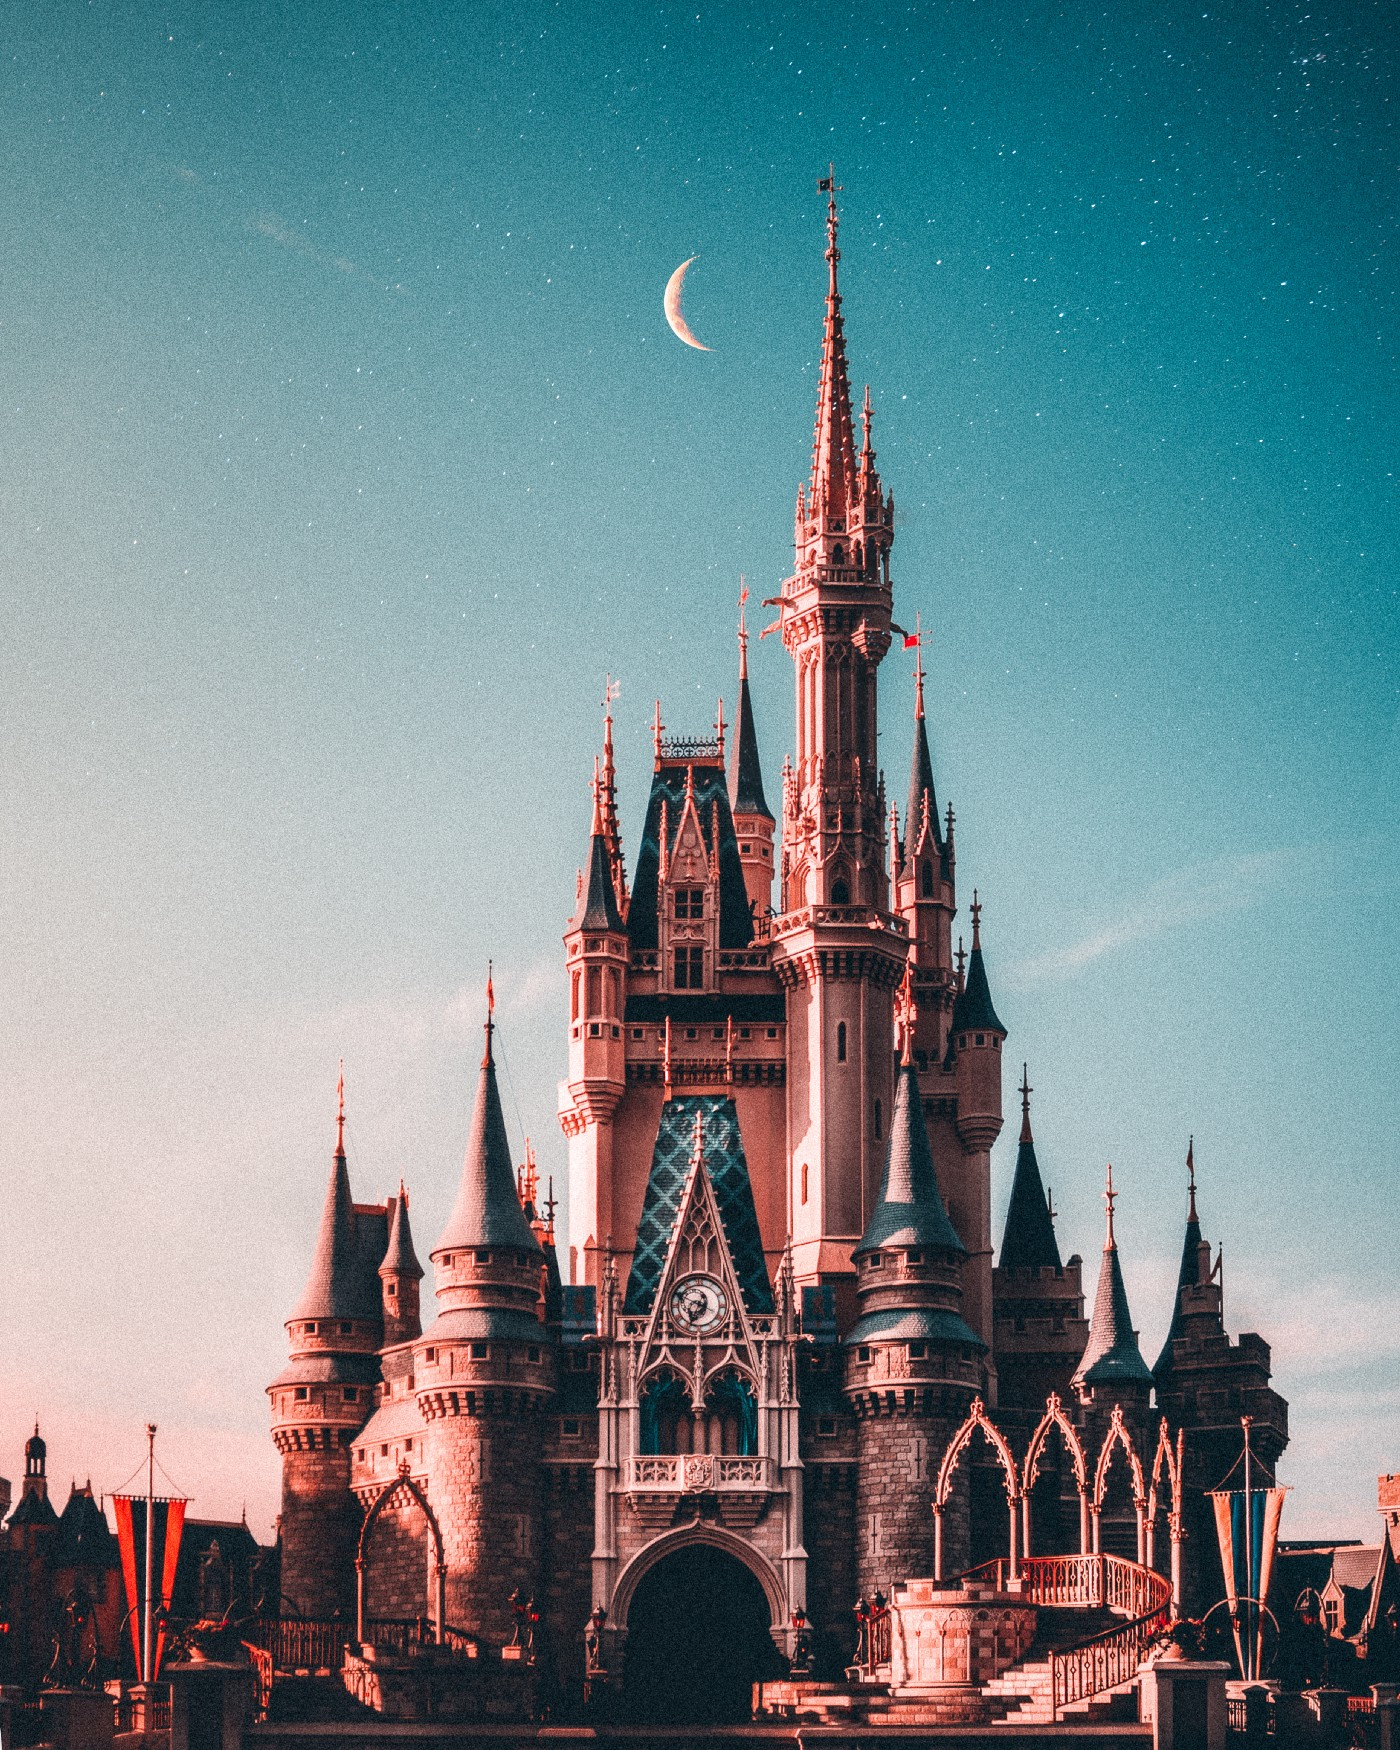 Big castle in Disney World at dusk with a crescent moon behind